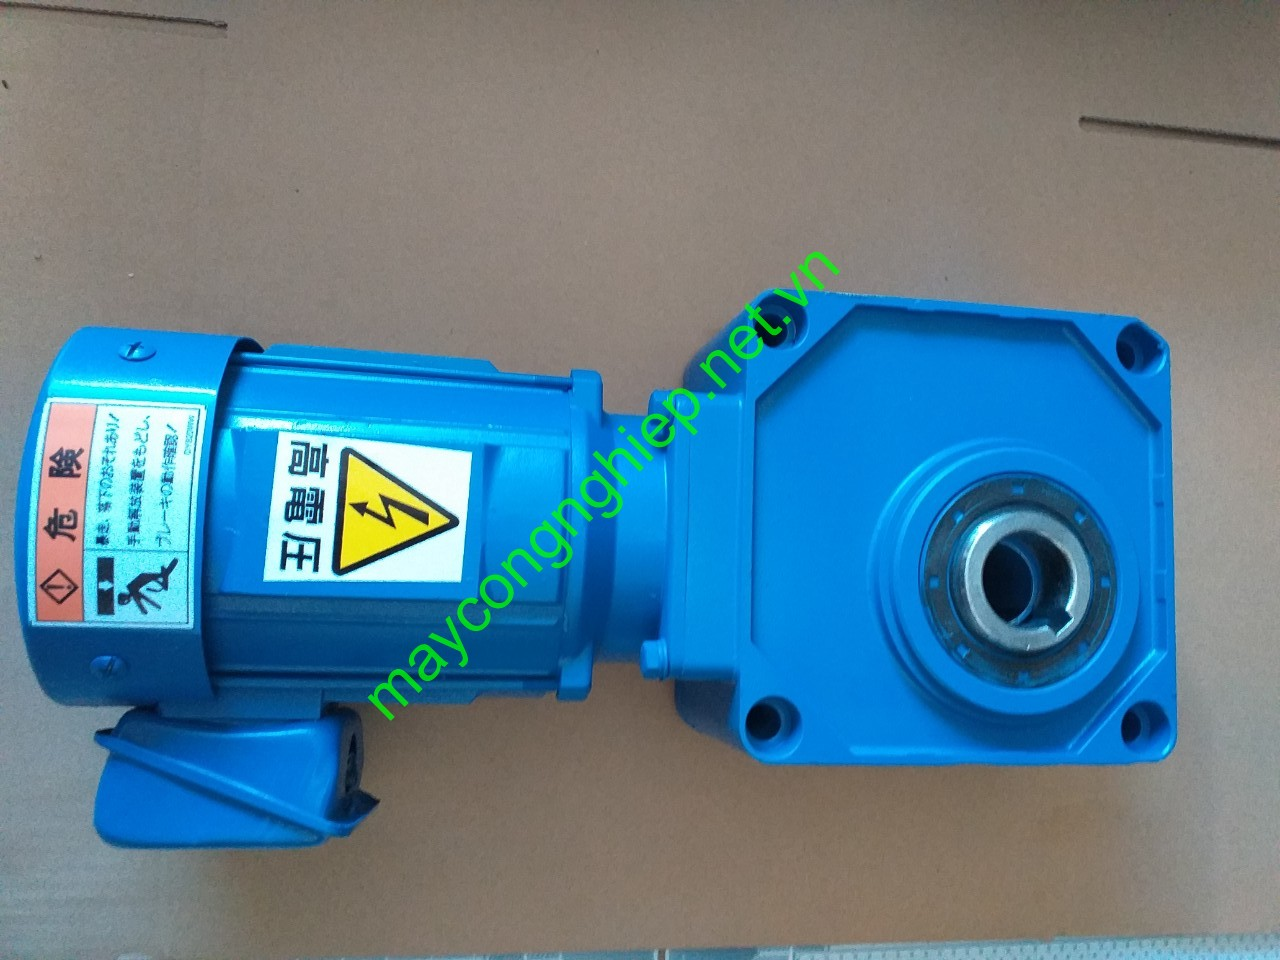 motor-giam-toc-cot-am-sumitomo-hyponic-0-1kw-1-240